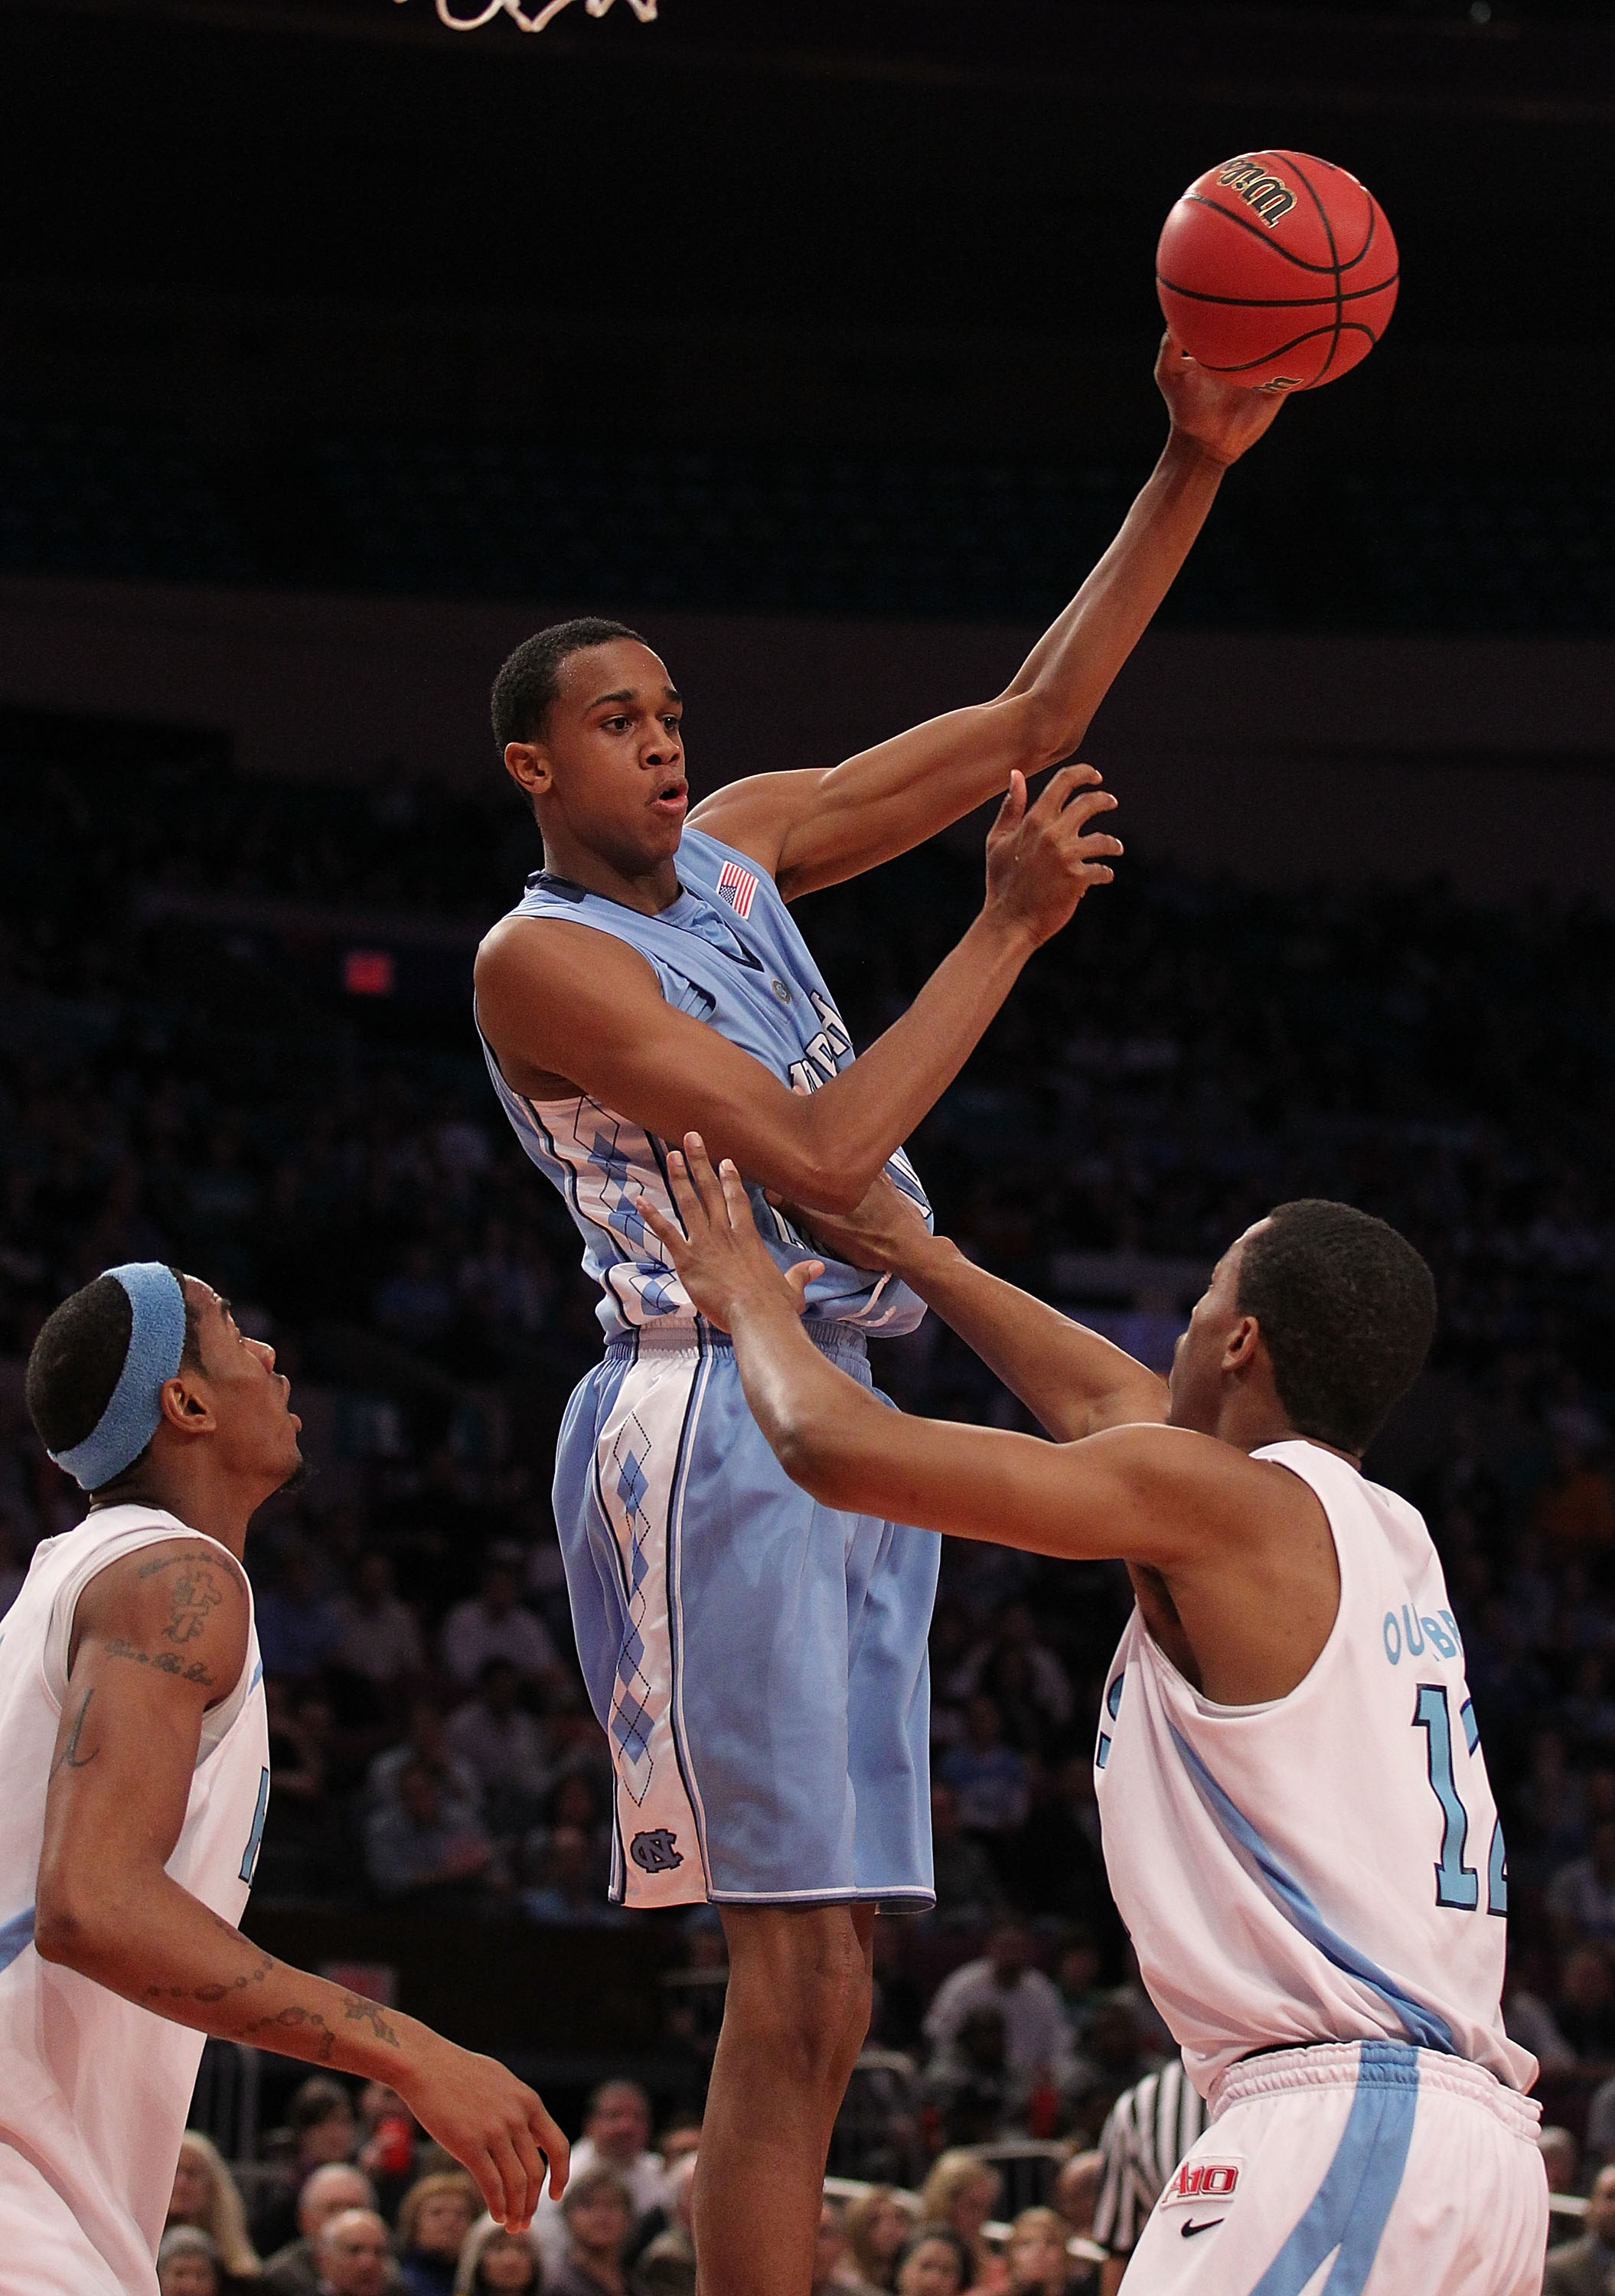 NEW YORK - MARCH 30:  John Henson #31 of the North Carolina Tar Heels passes the ball against Rhode Island Rams at Madison Square Garden on March 30, 2010 in New York, New York.  (Photo by Nick Laham/Getty Images)